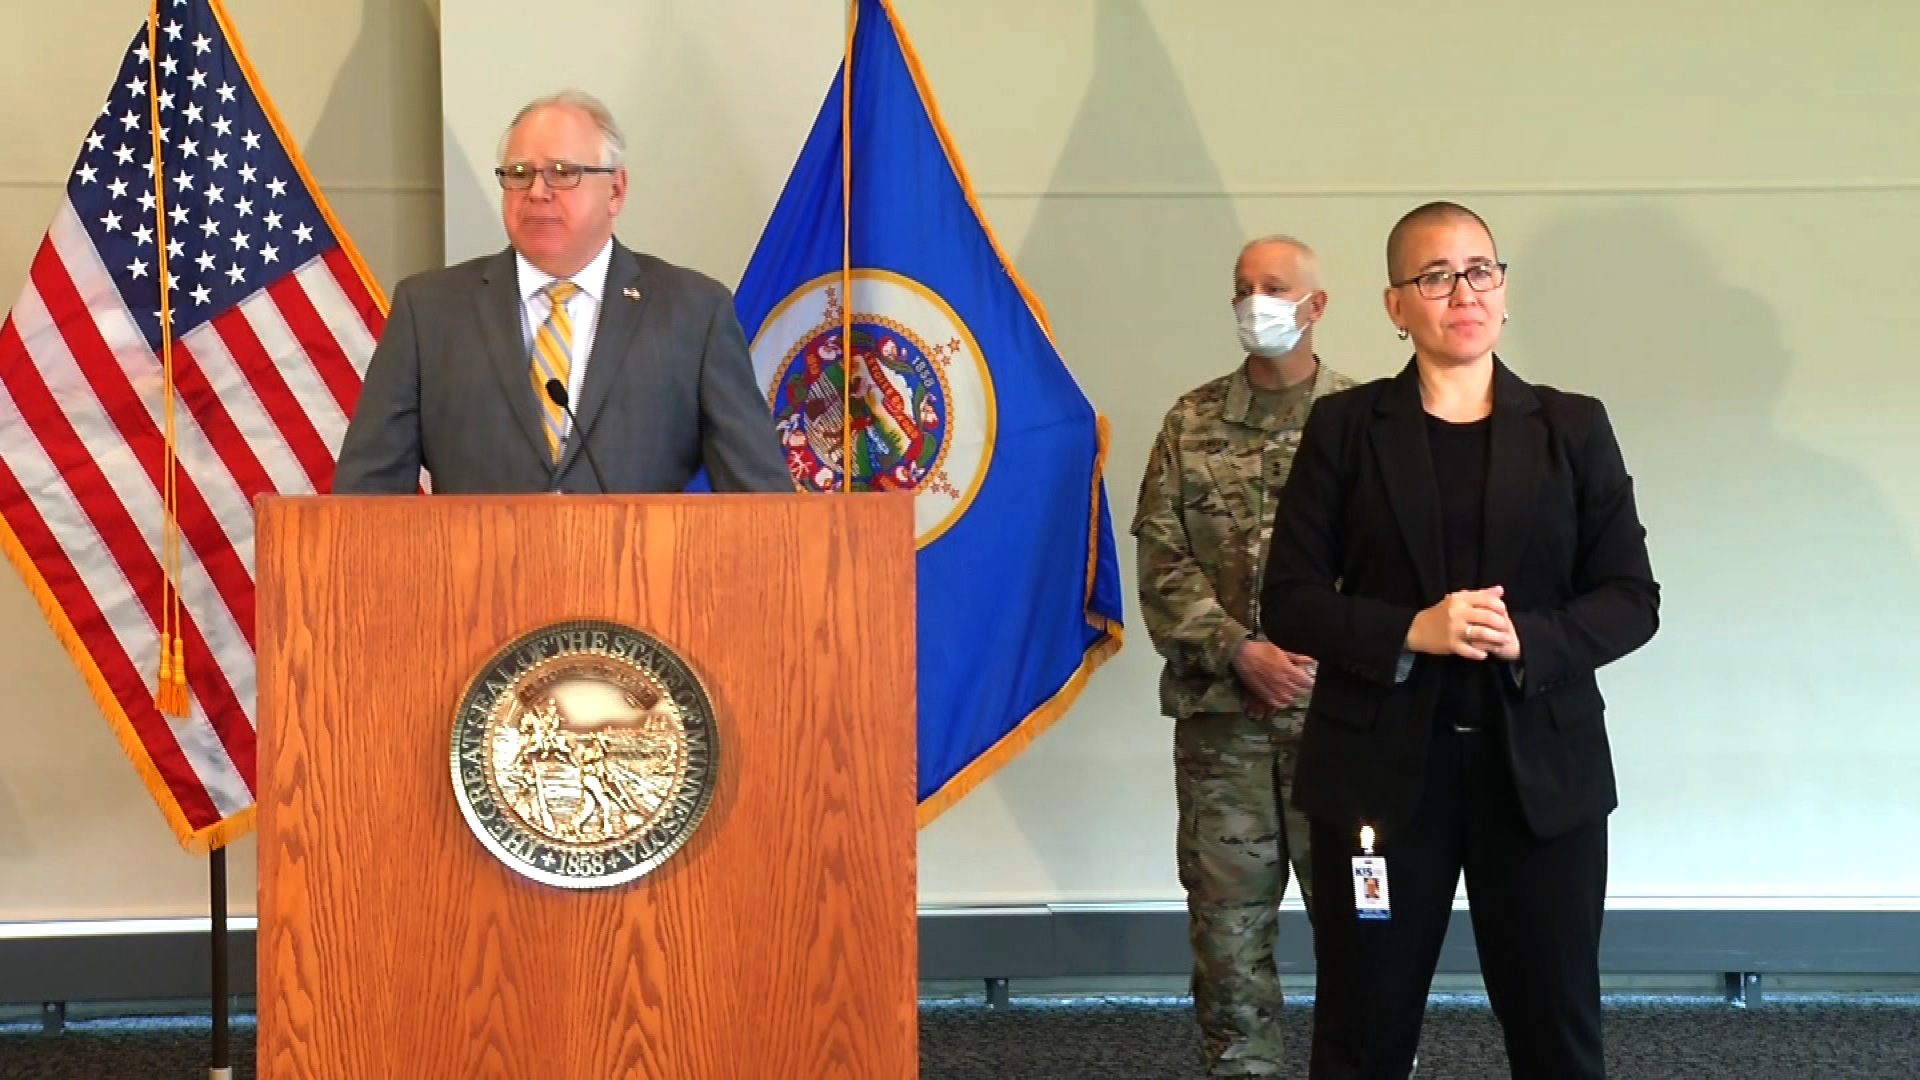 Minnesota Gov. Tim Walz speaking at a news conference in St. Paul, Minnesota, on May 29.